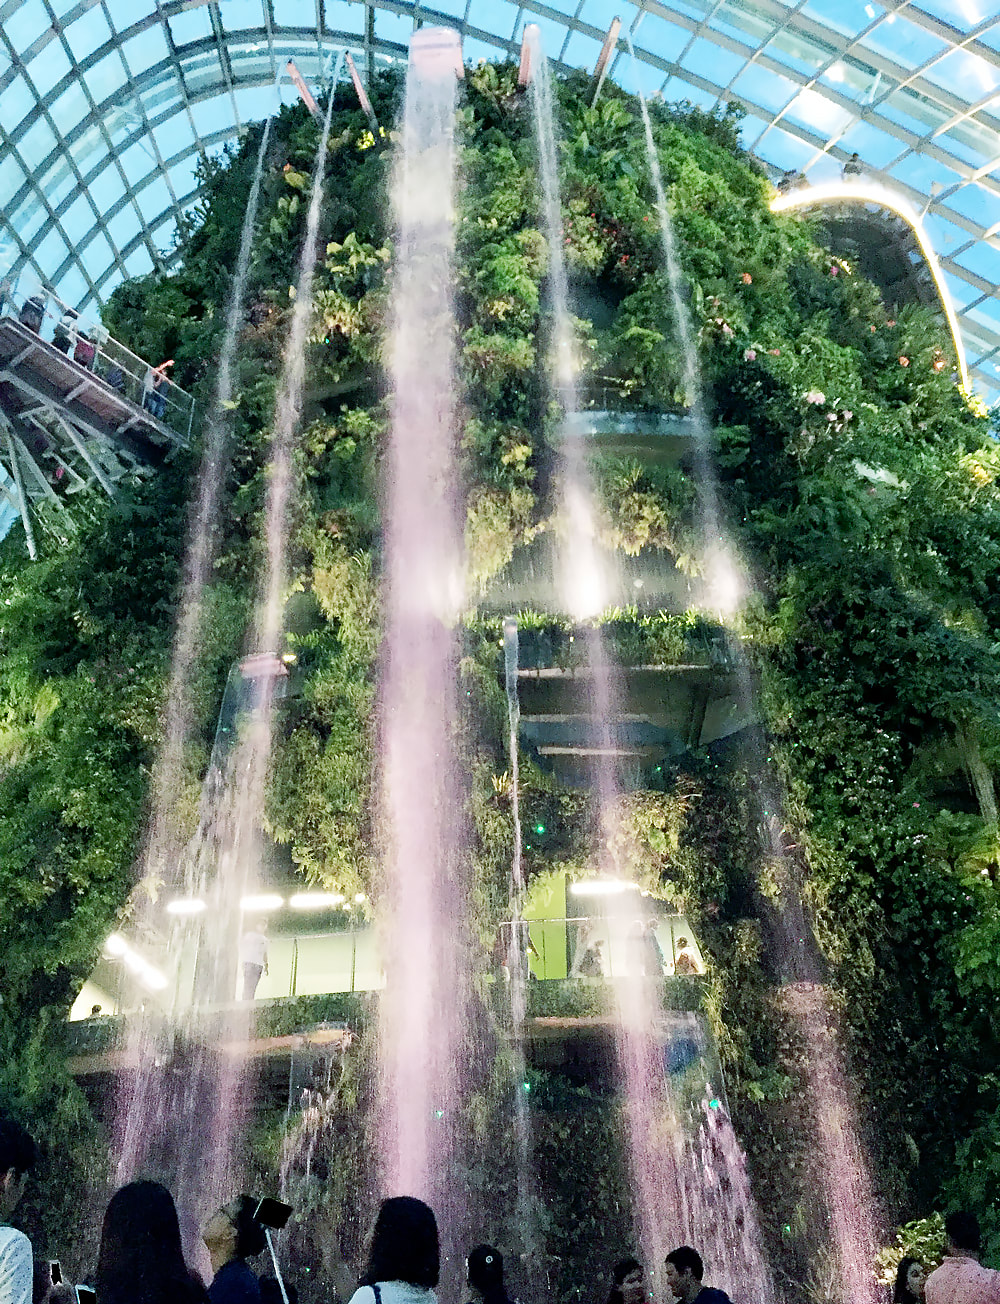 The 35-metre tall waterfall inside of the Cloud Forest at Gardens by the Bay, Singapore.